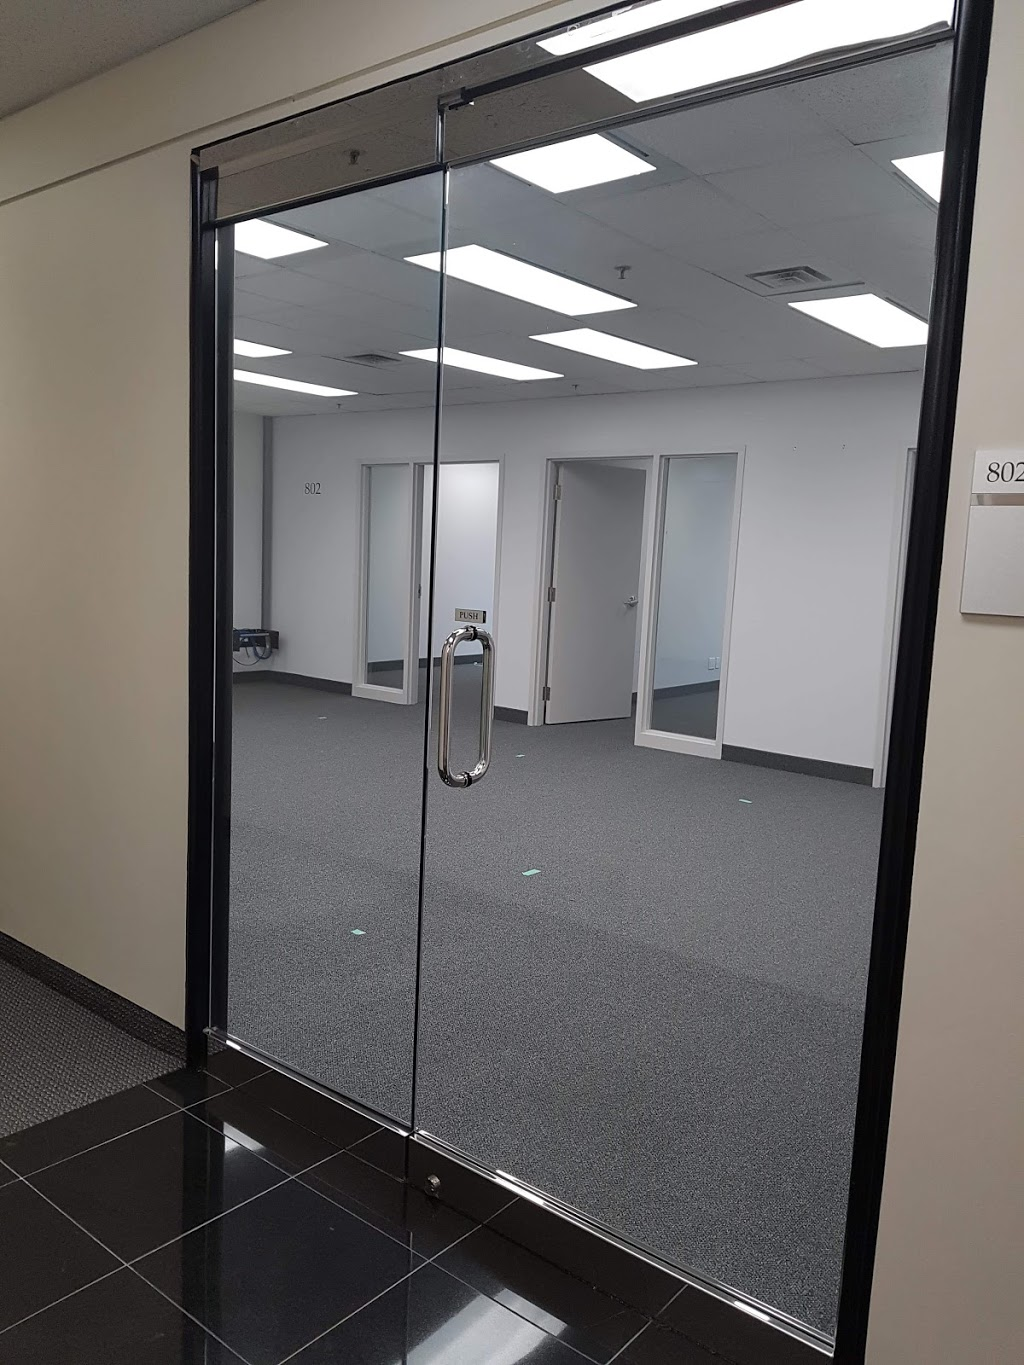 R.C glass service | point of interest | 6 Forestgrove Cir, Brampton, ON L6Z 4T2, Canada | 4164358344 OR +1 416-435-8344